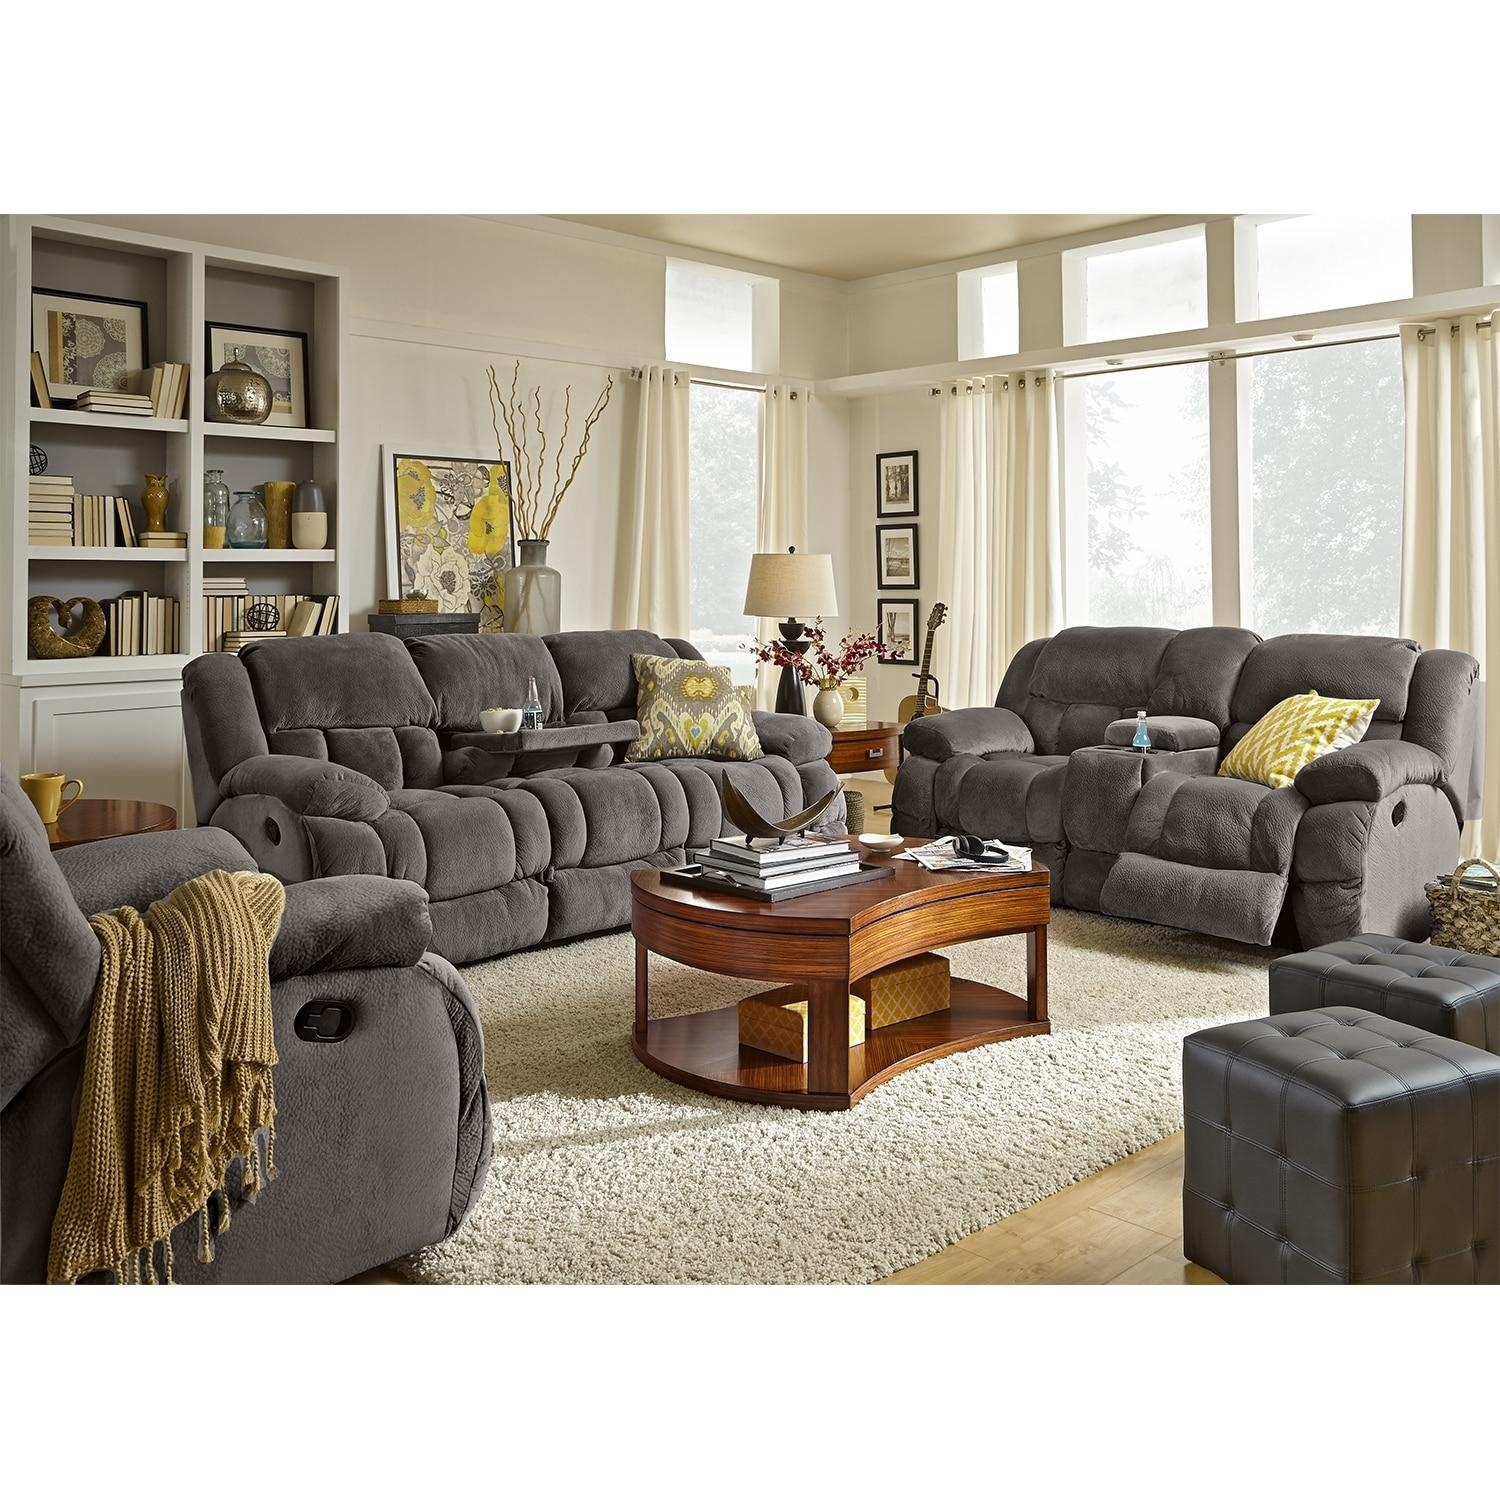 Park City Dual Reclining Sofa And Loveseat Set – Gray | Value City Throughout Reclining Sofas And Loveseats Sets (Image 12 of 20)